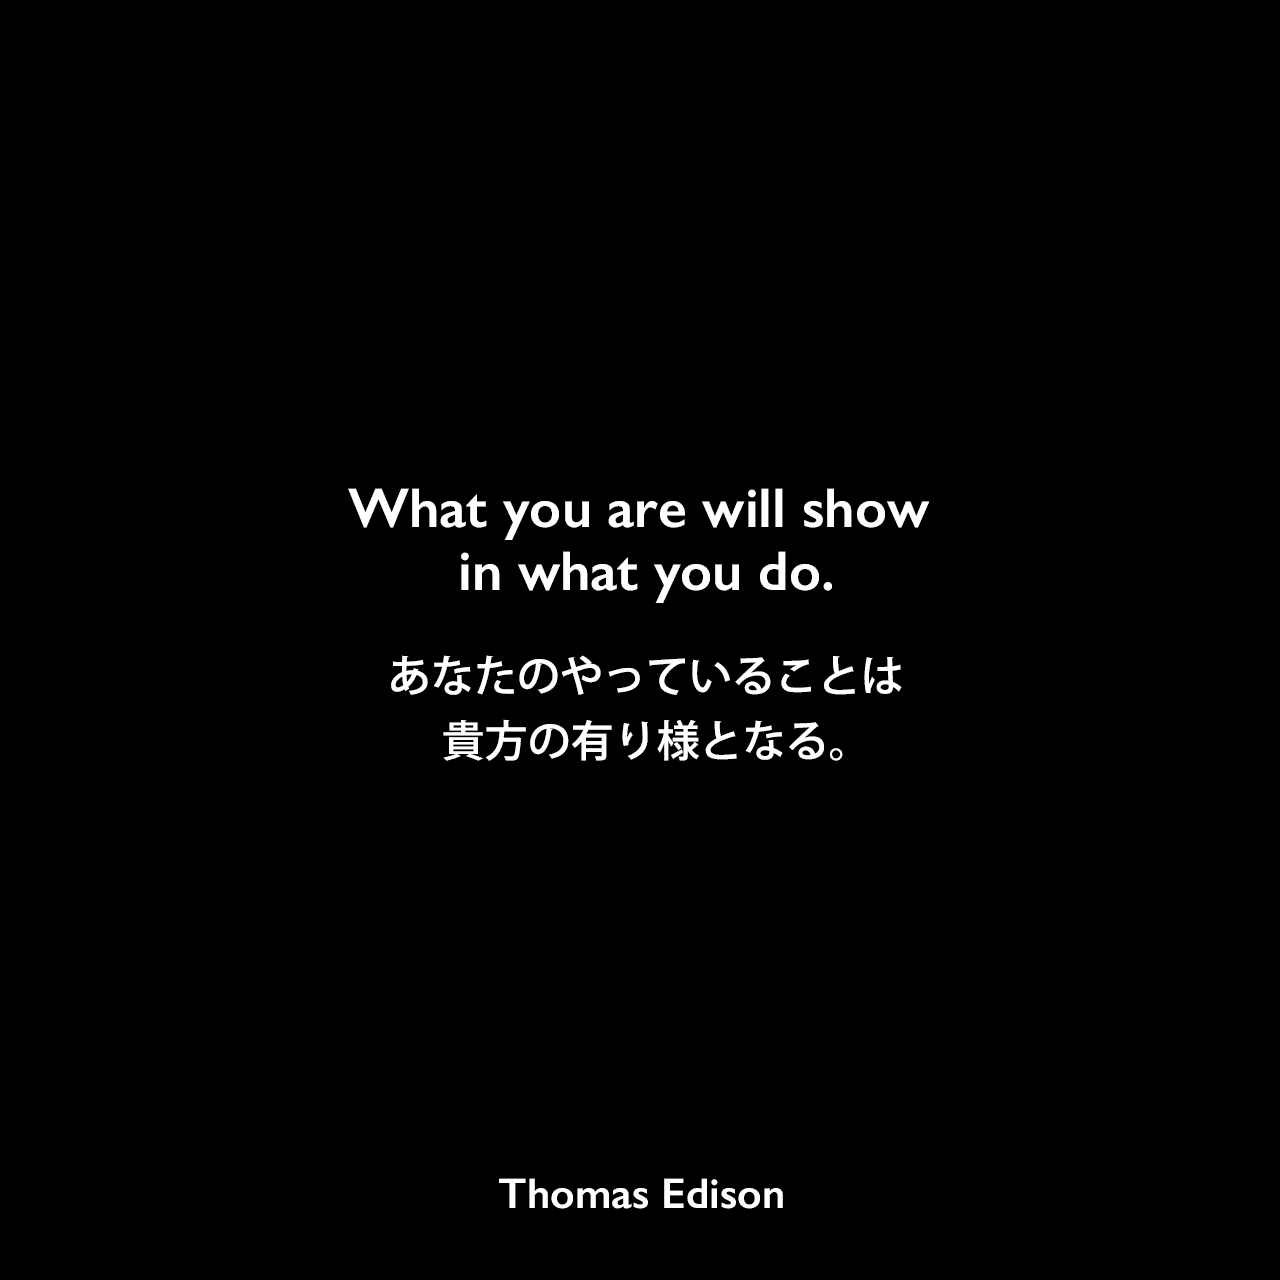 What you are will show in what you do.あなたのやっていることは、貴方の有り様となる。Thomas Edison